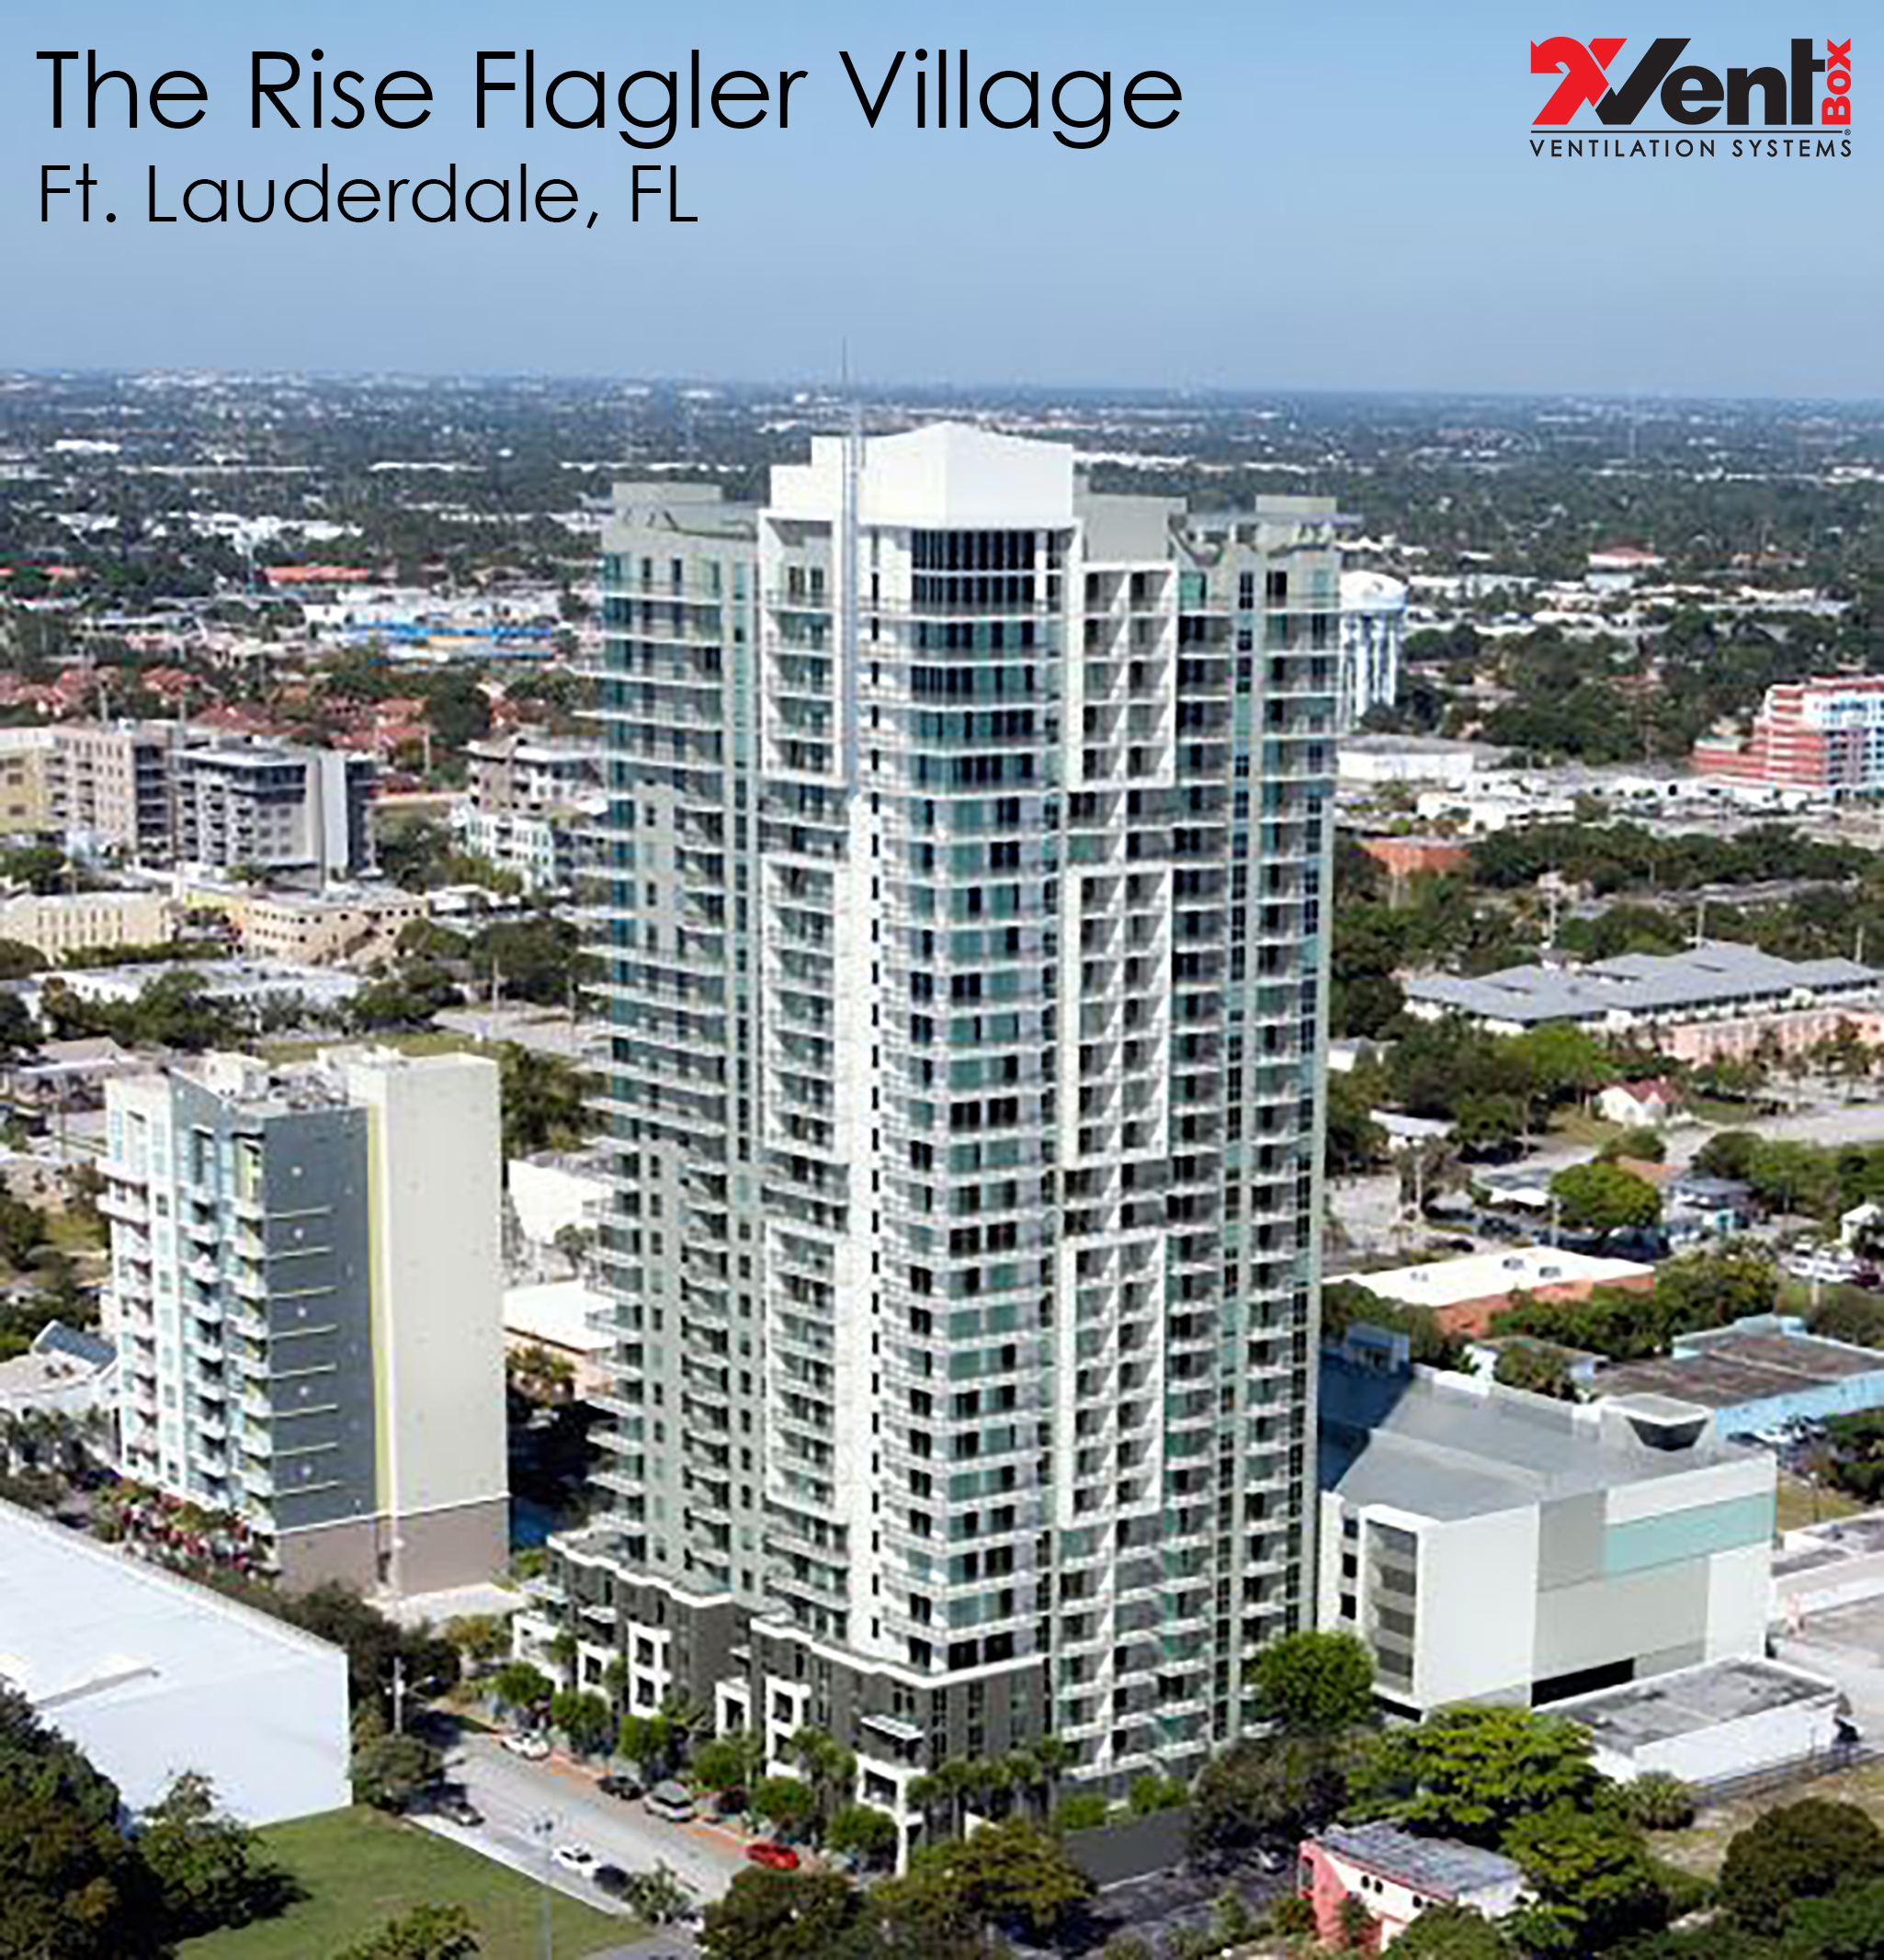 The Rise Flagler Village